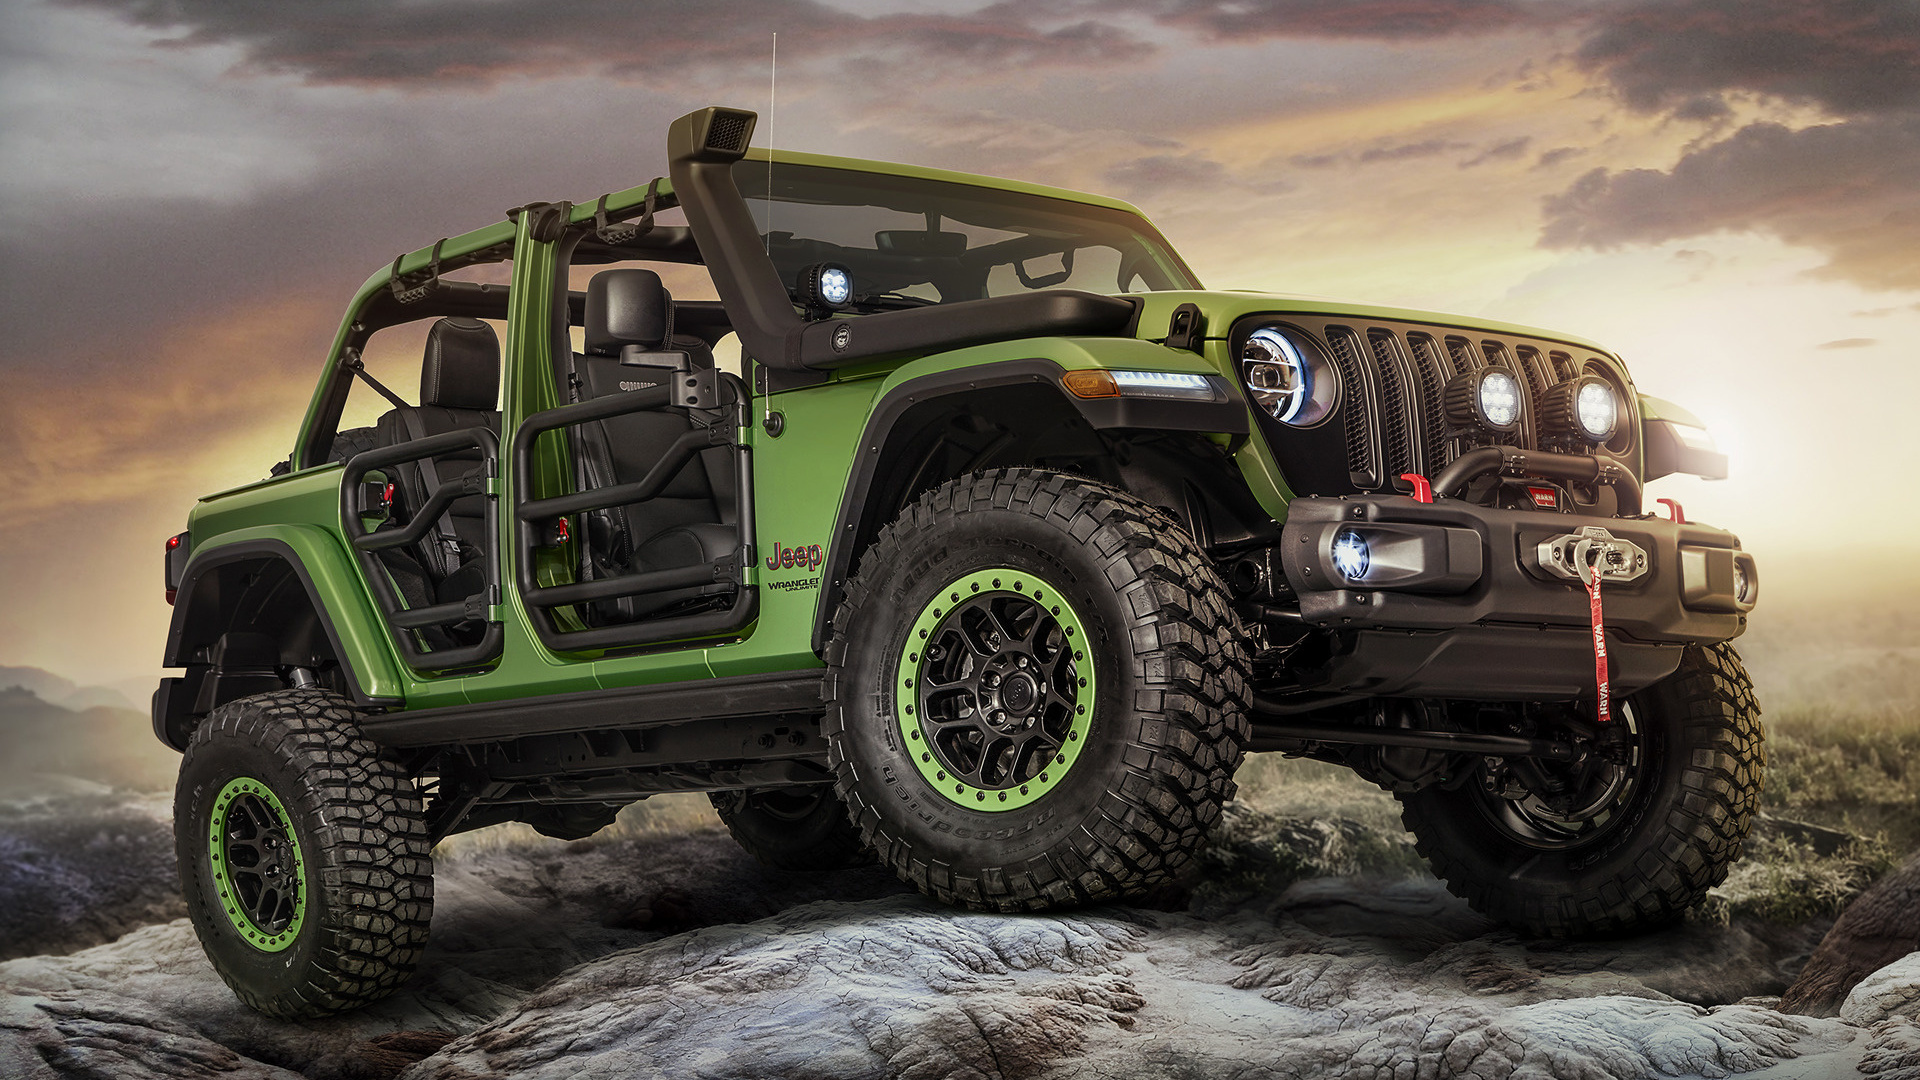 jeep wrangler unlimited rubicon moparized (2018) wallpapers and hd